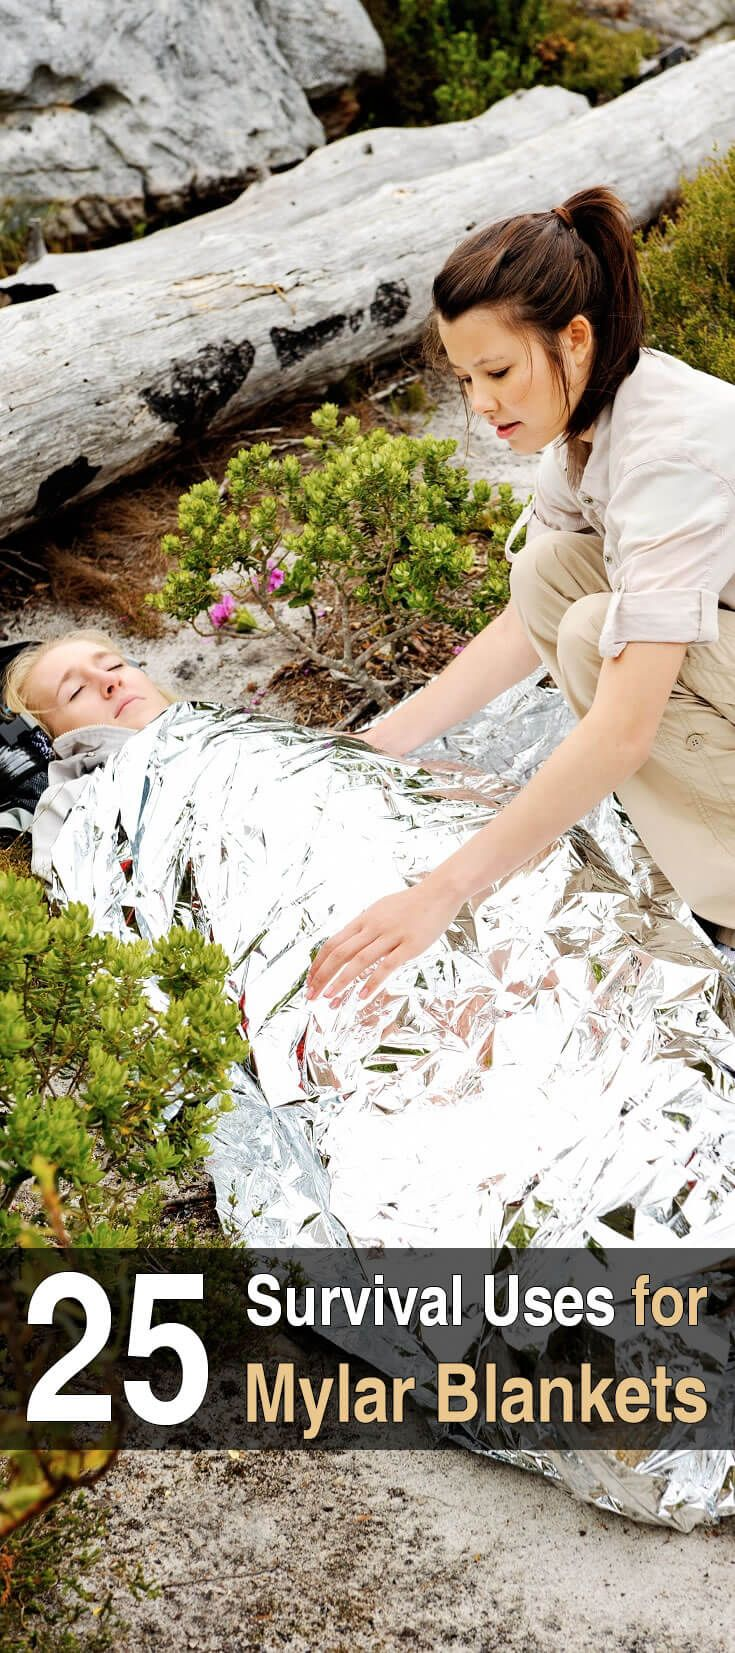 Mylar blankets are small, durable, weigh only a few ounces, retain 90% of your body heat, and have dozens of survival uses in an emergency.